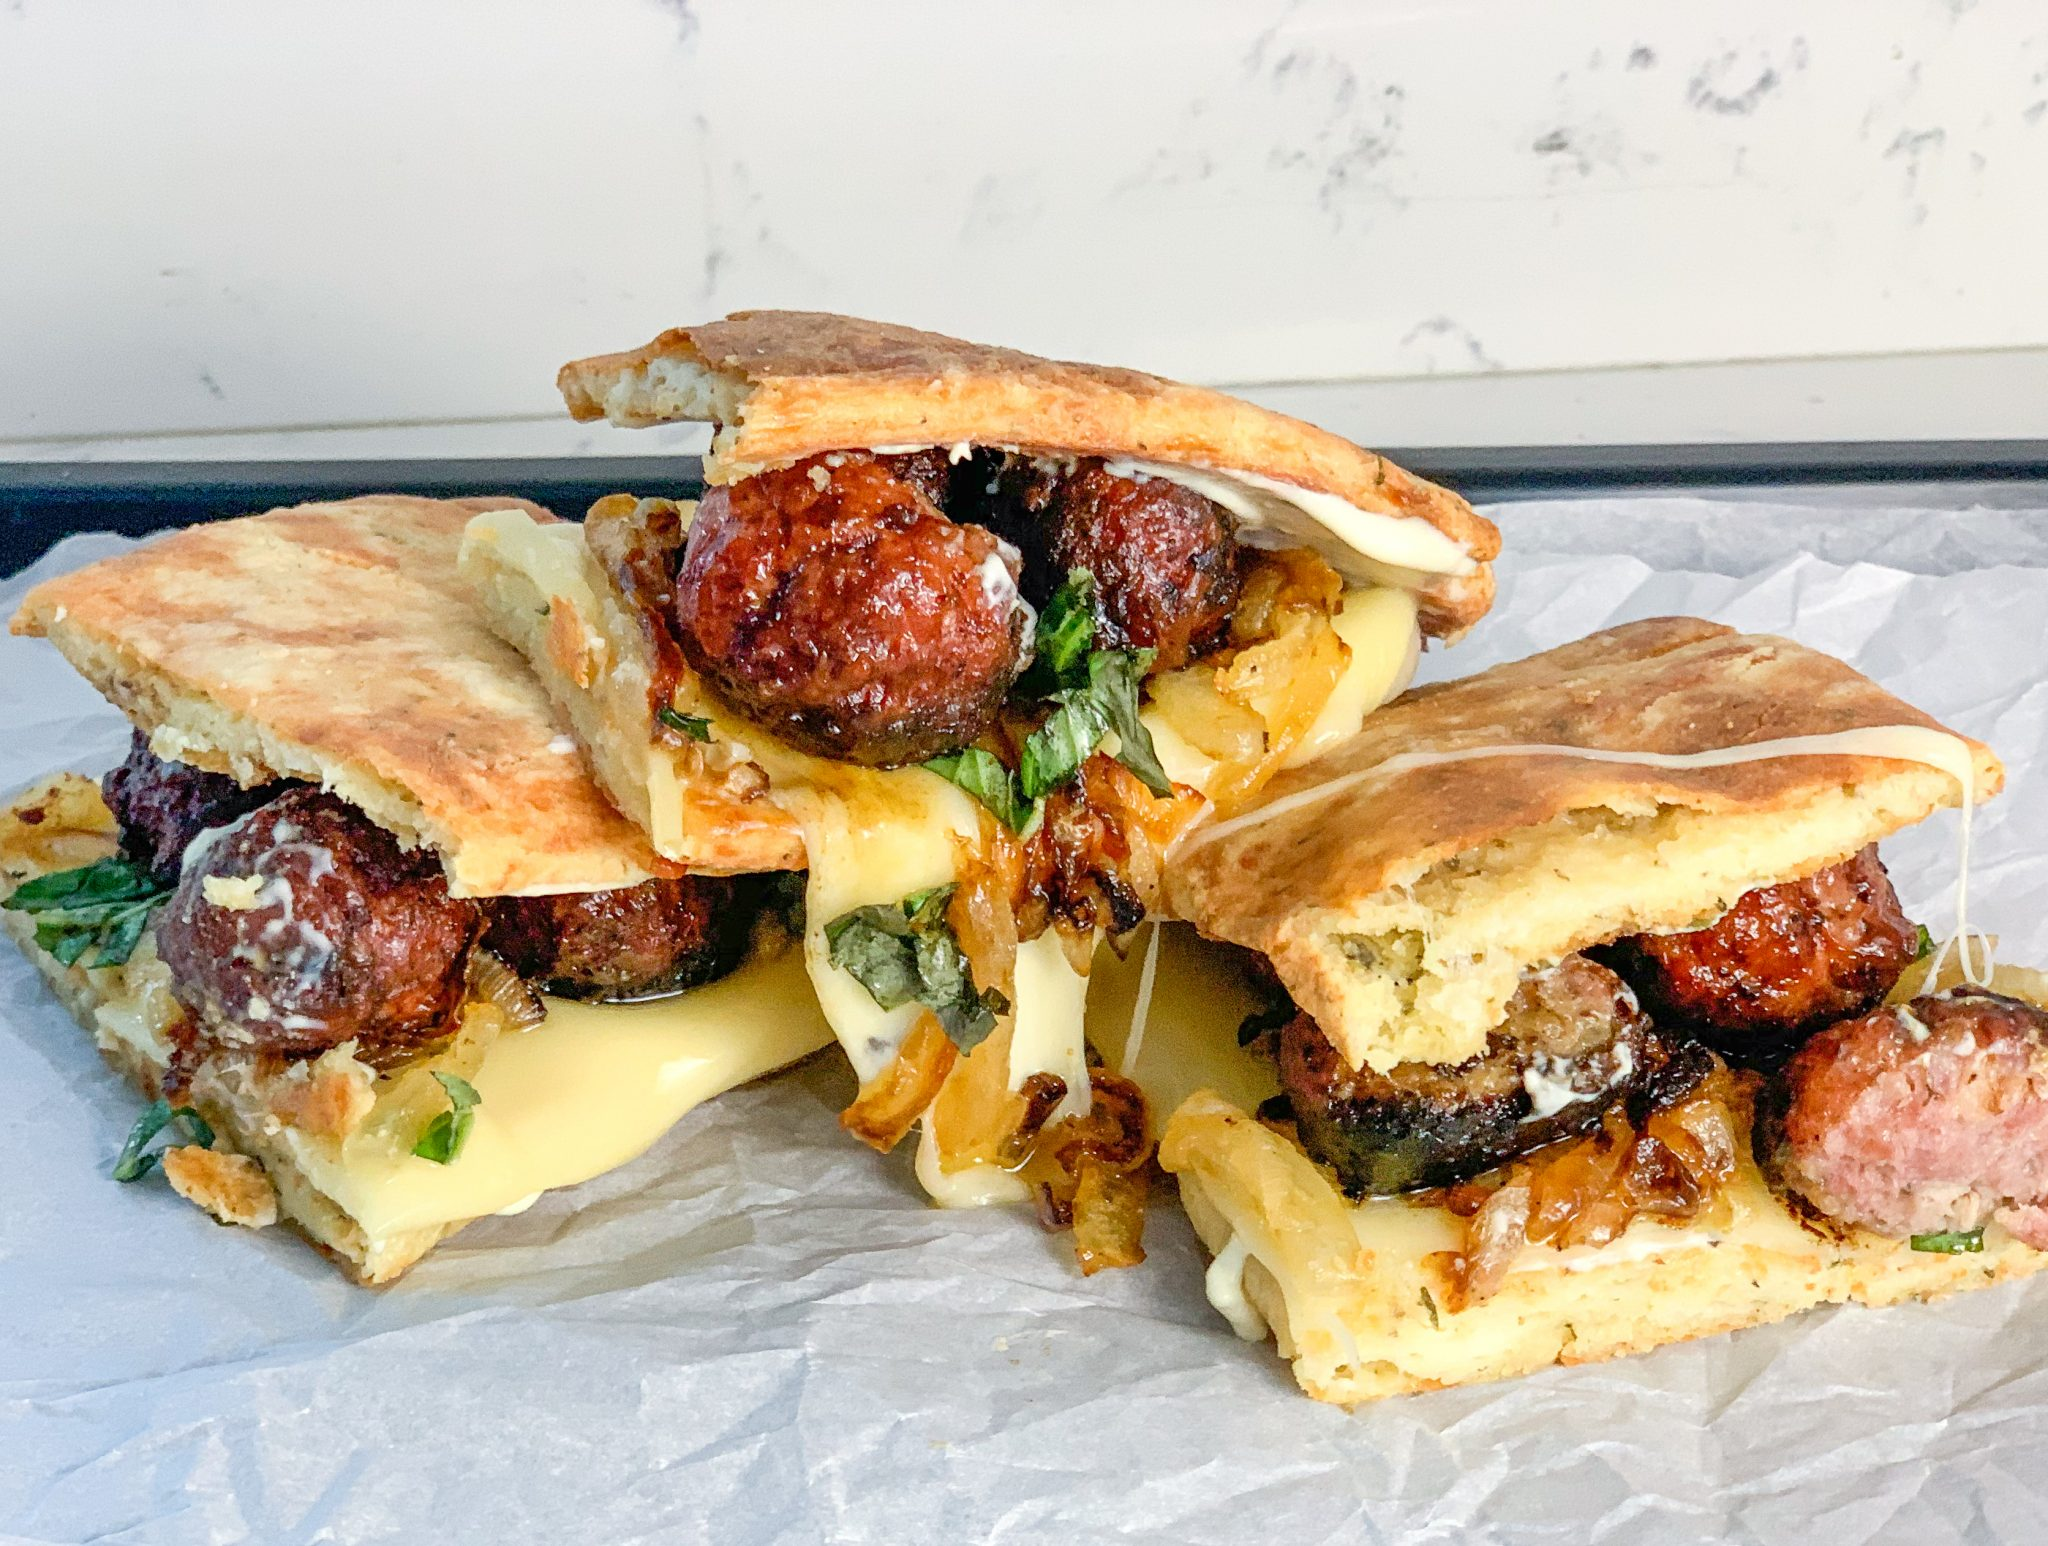 Meatball Sub Sandwich on Low Carb Bread photo from mincerepublic.com